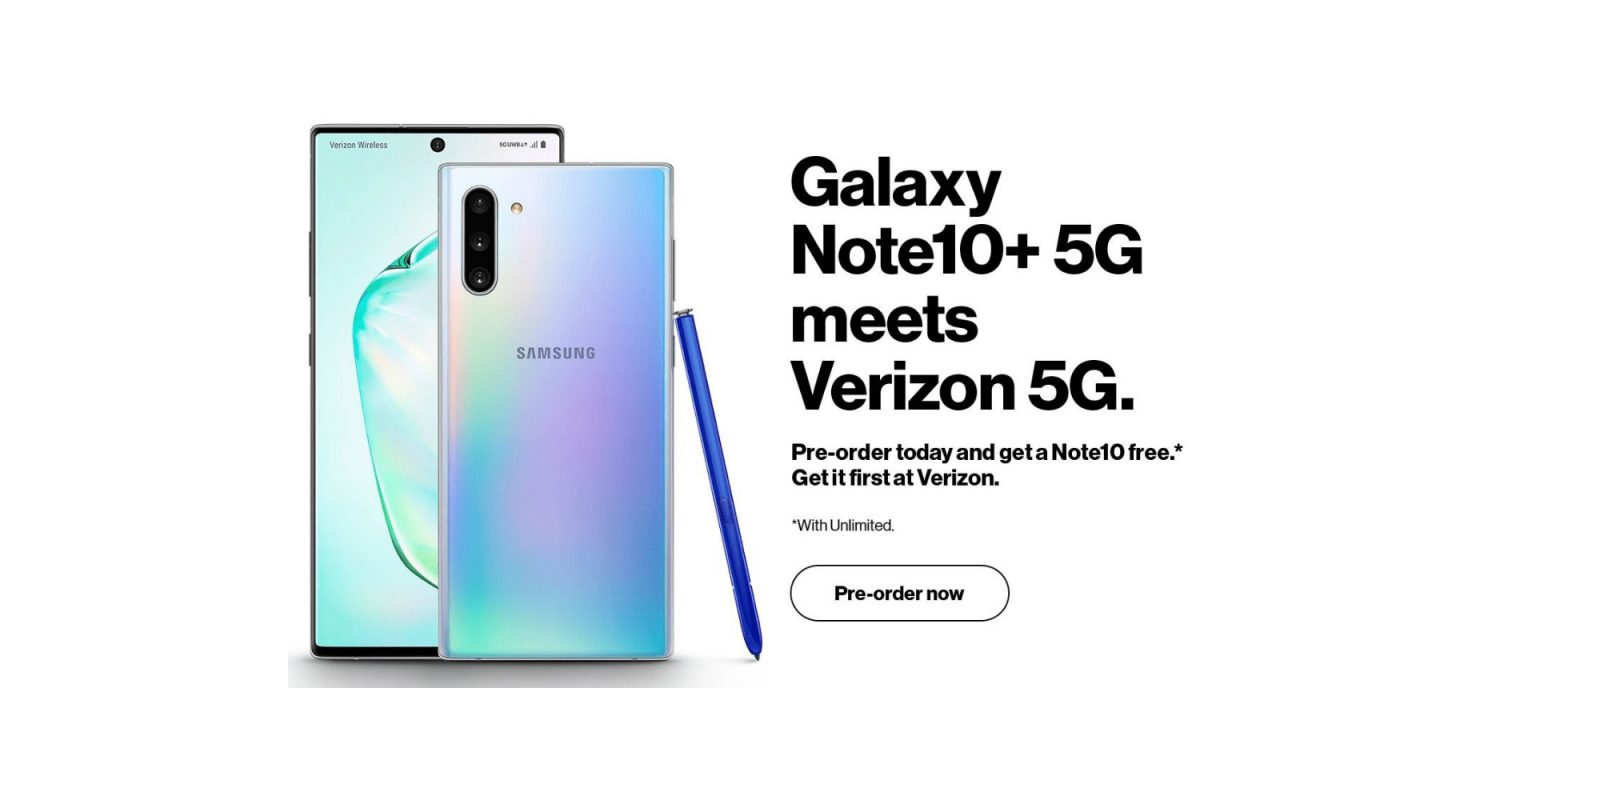 Galaxy Note 10 5g Leaks In Verizon Promo Images 9to5google